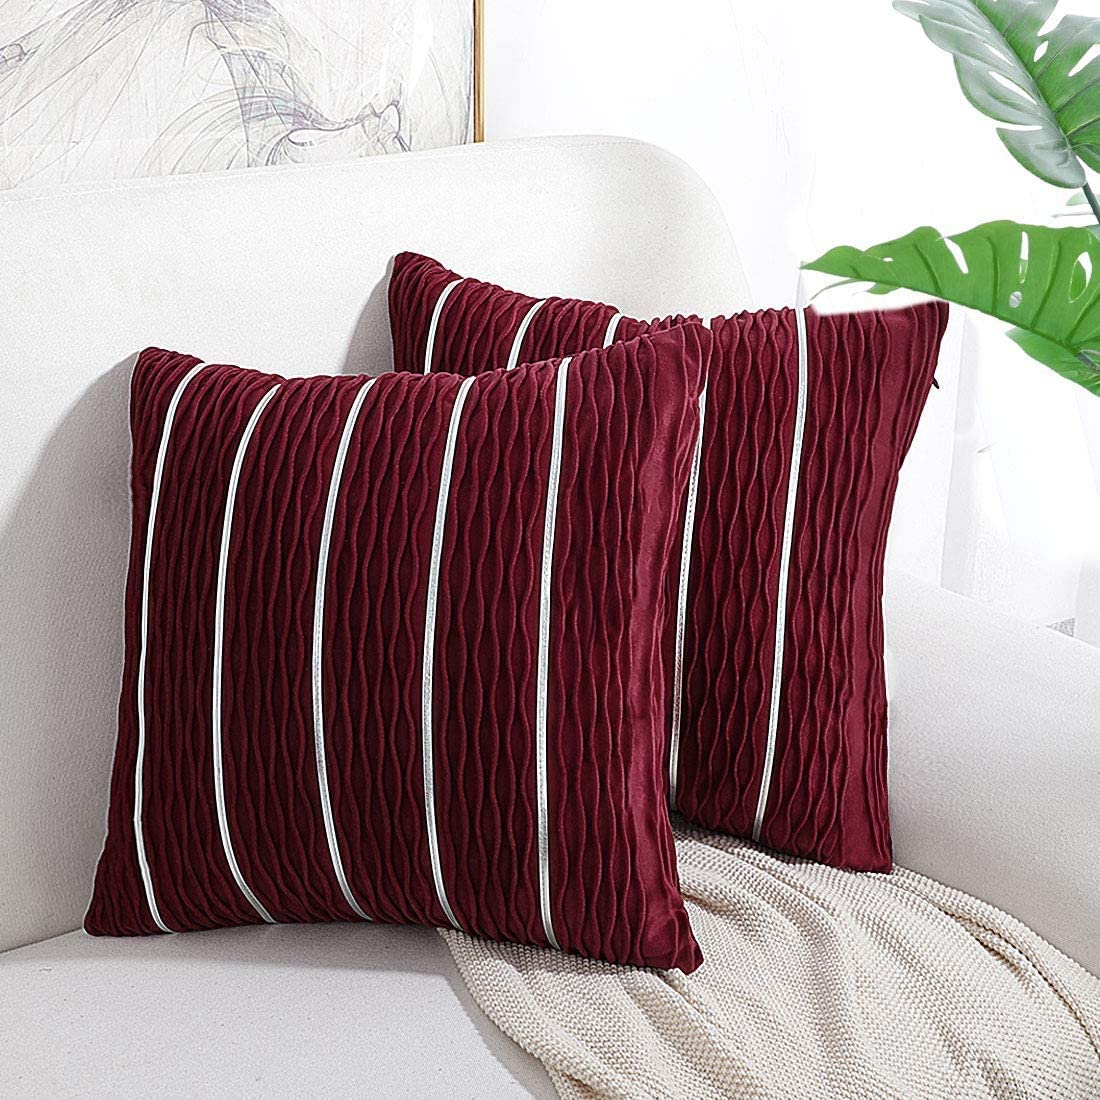 Flobbs Pillow Case Velvet Soft Throw Cushion Covers With Hidden Zipper For Couch 45x45 Cm 2 Packs Red Amazon Co Uk Kitchen Home